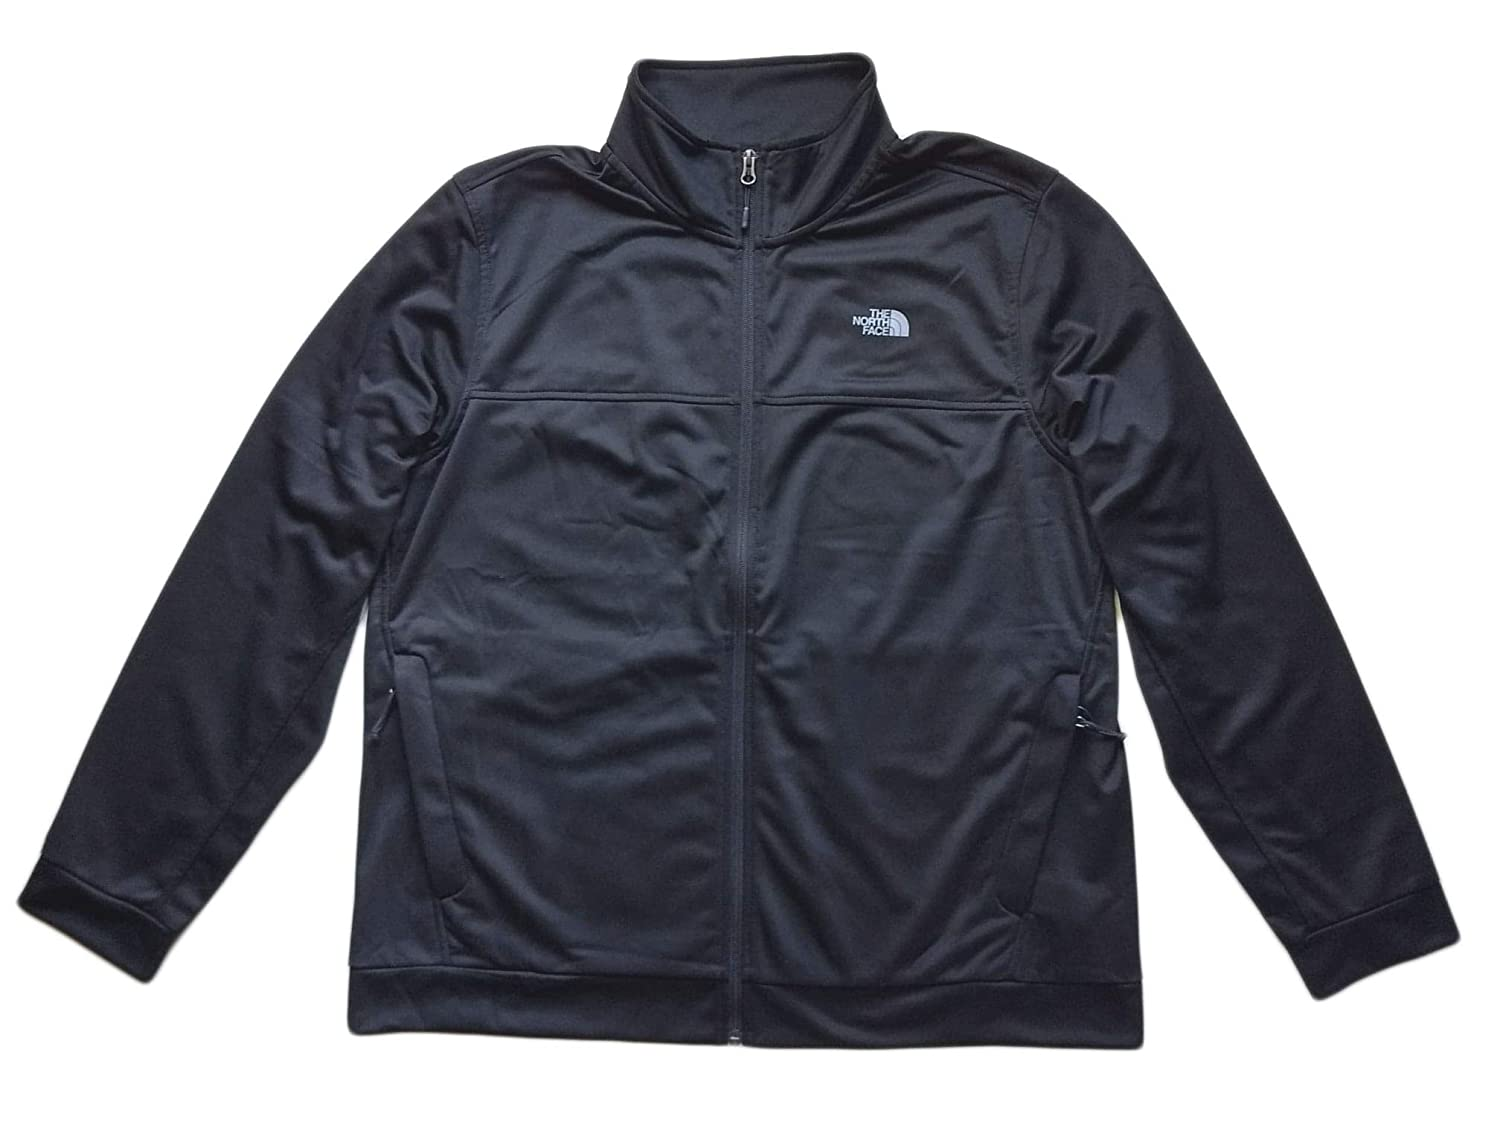 The North Face Mens 100 Weight Cinder Full Zip Fleece Jacket